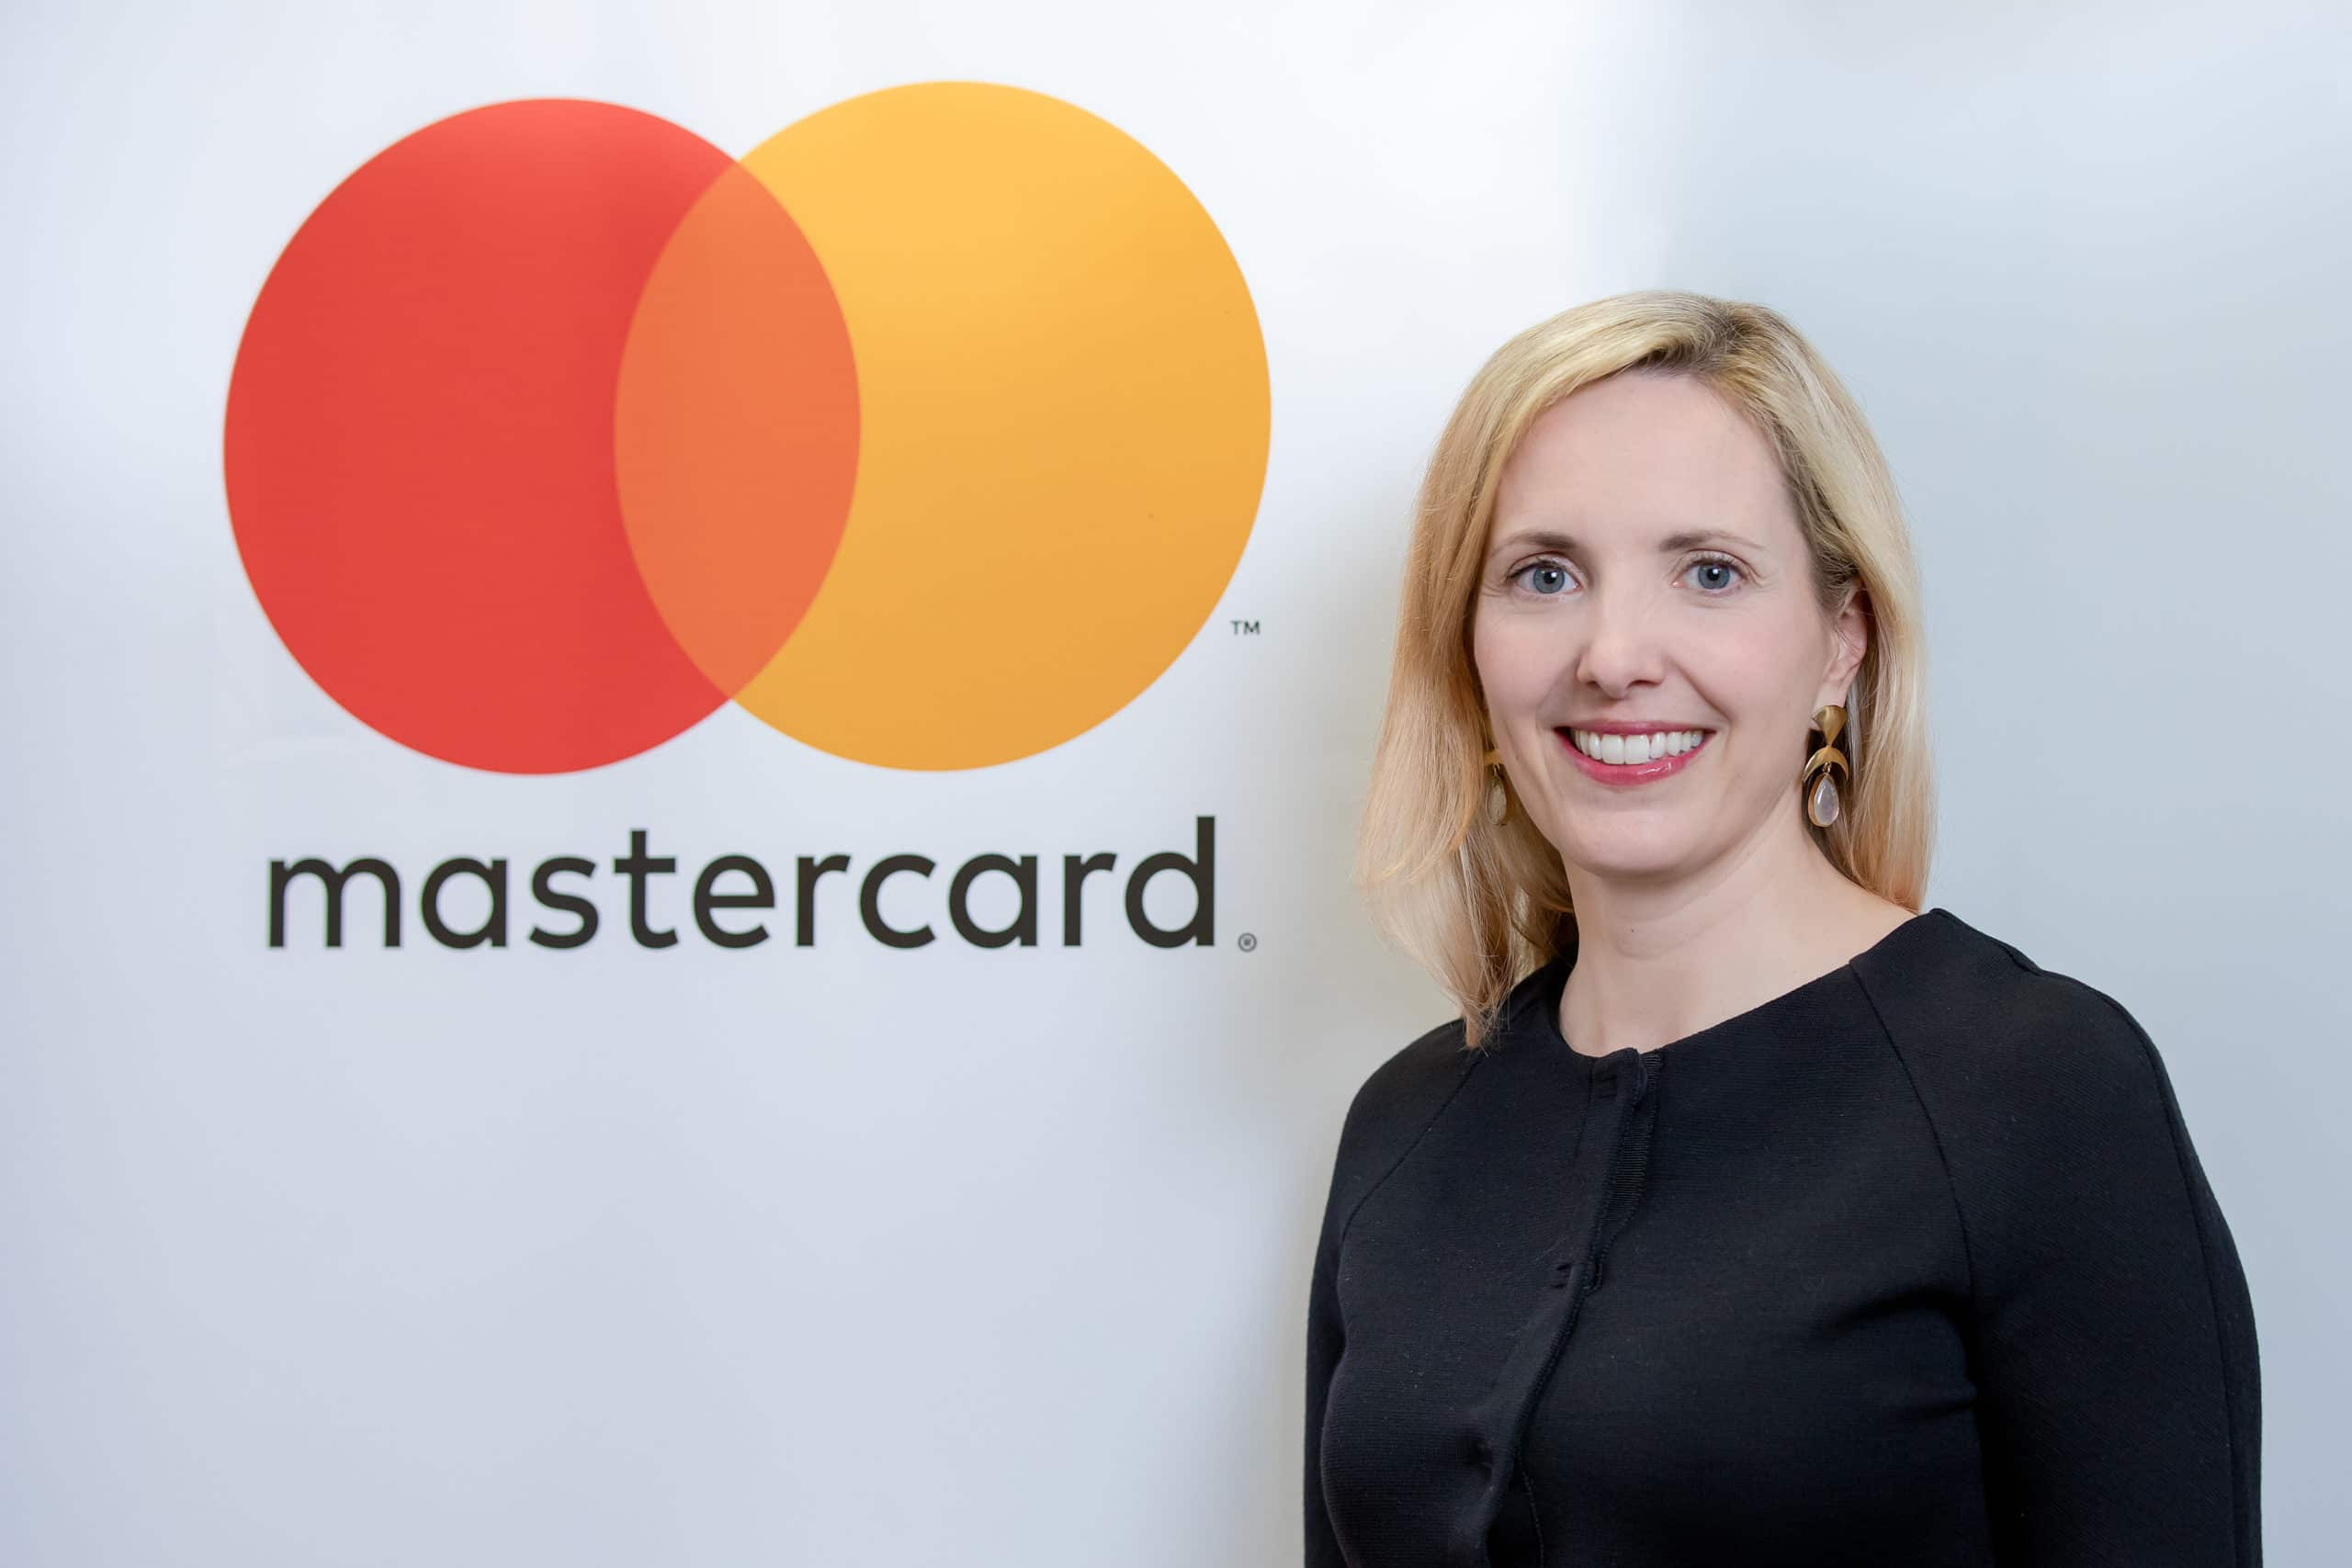 Suzanne Morel Country manager mastercard South Africa – Landscape